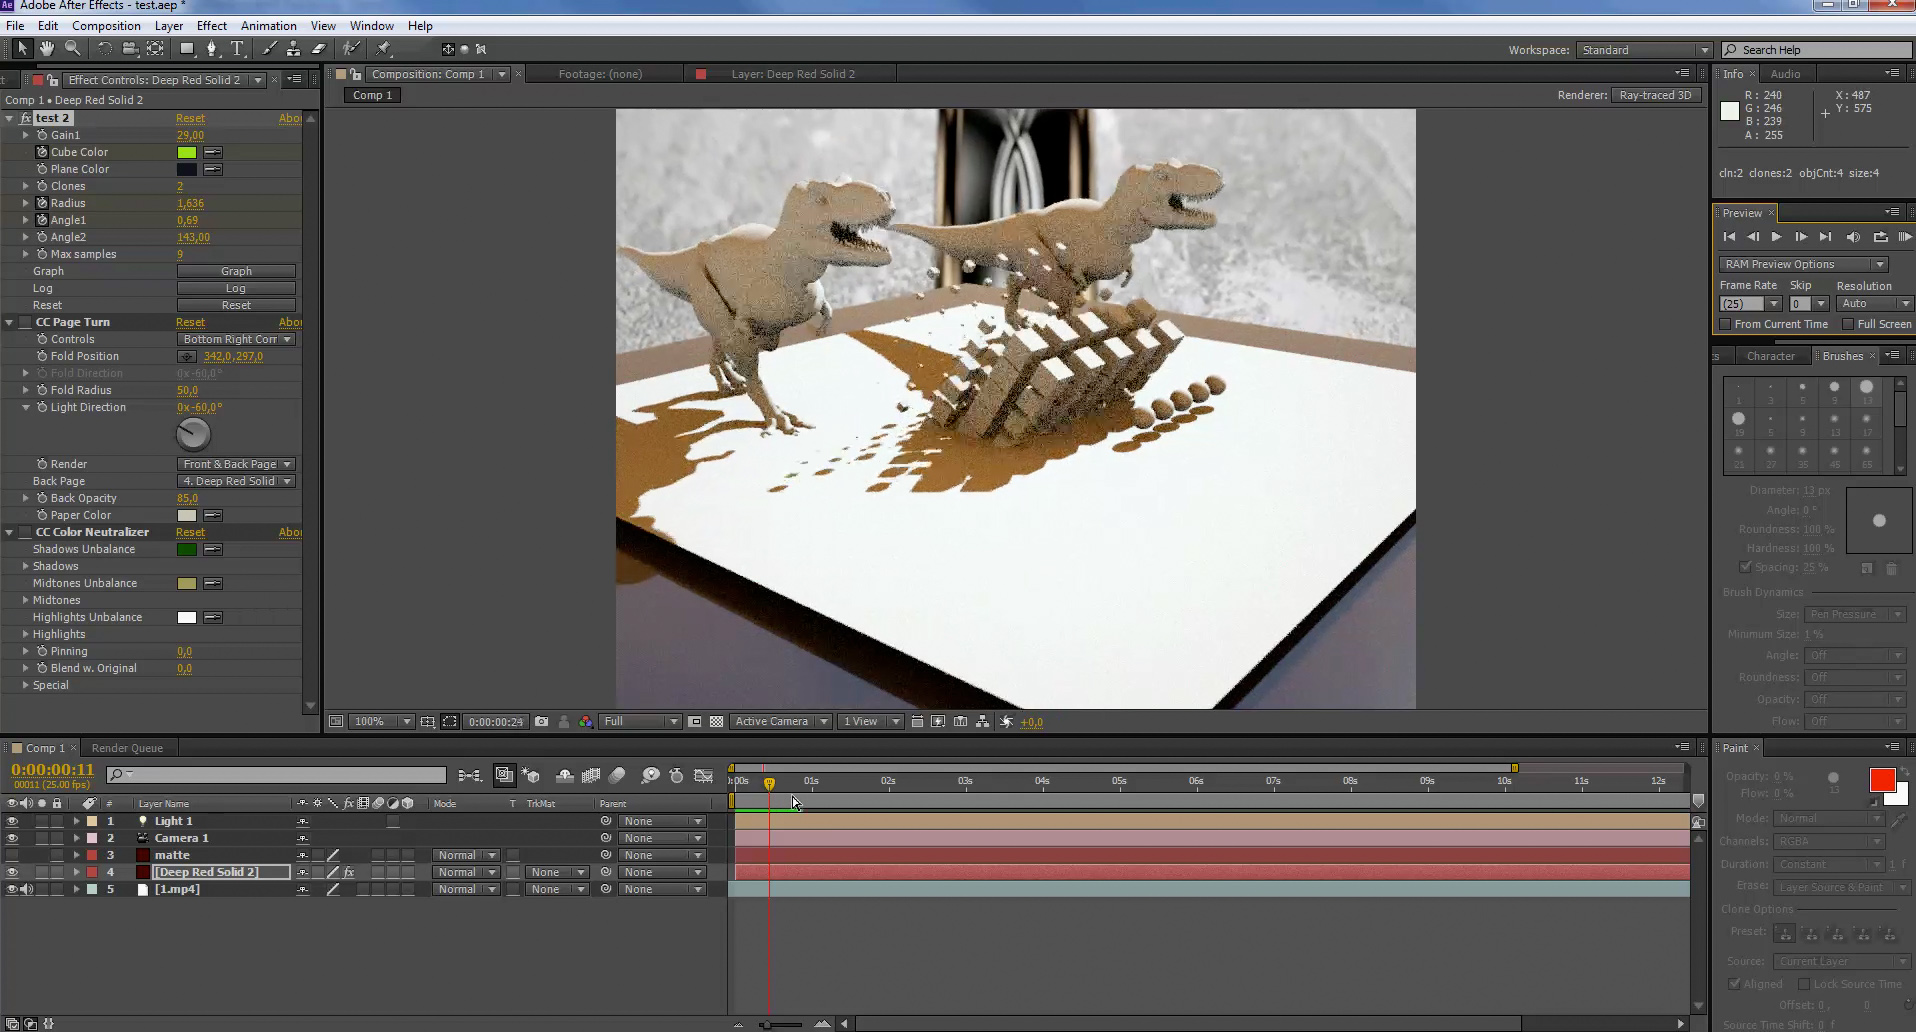 2014 Nab Show Otoy Brings Octanerender To Adobe After Effects Providin...